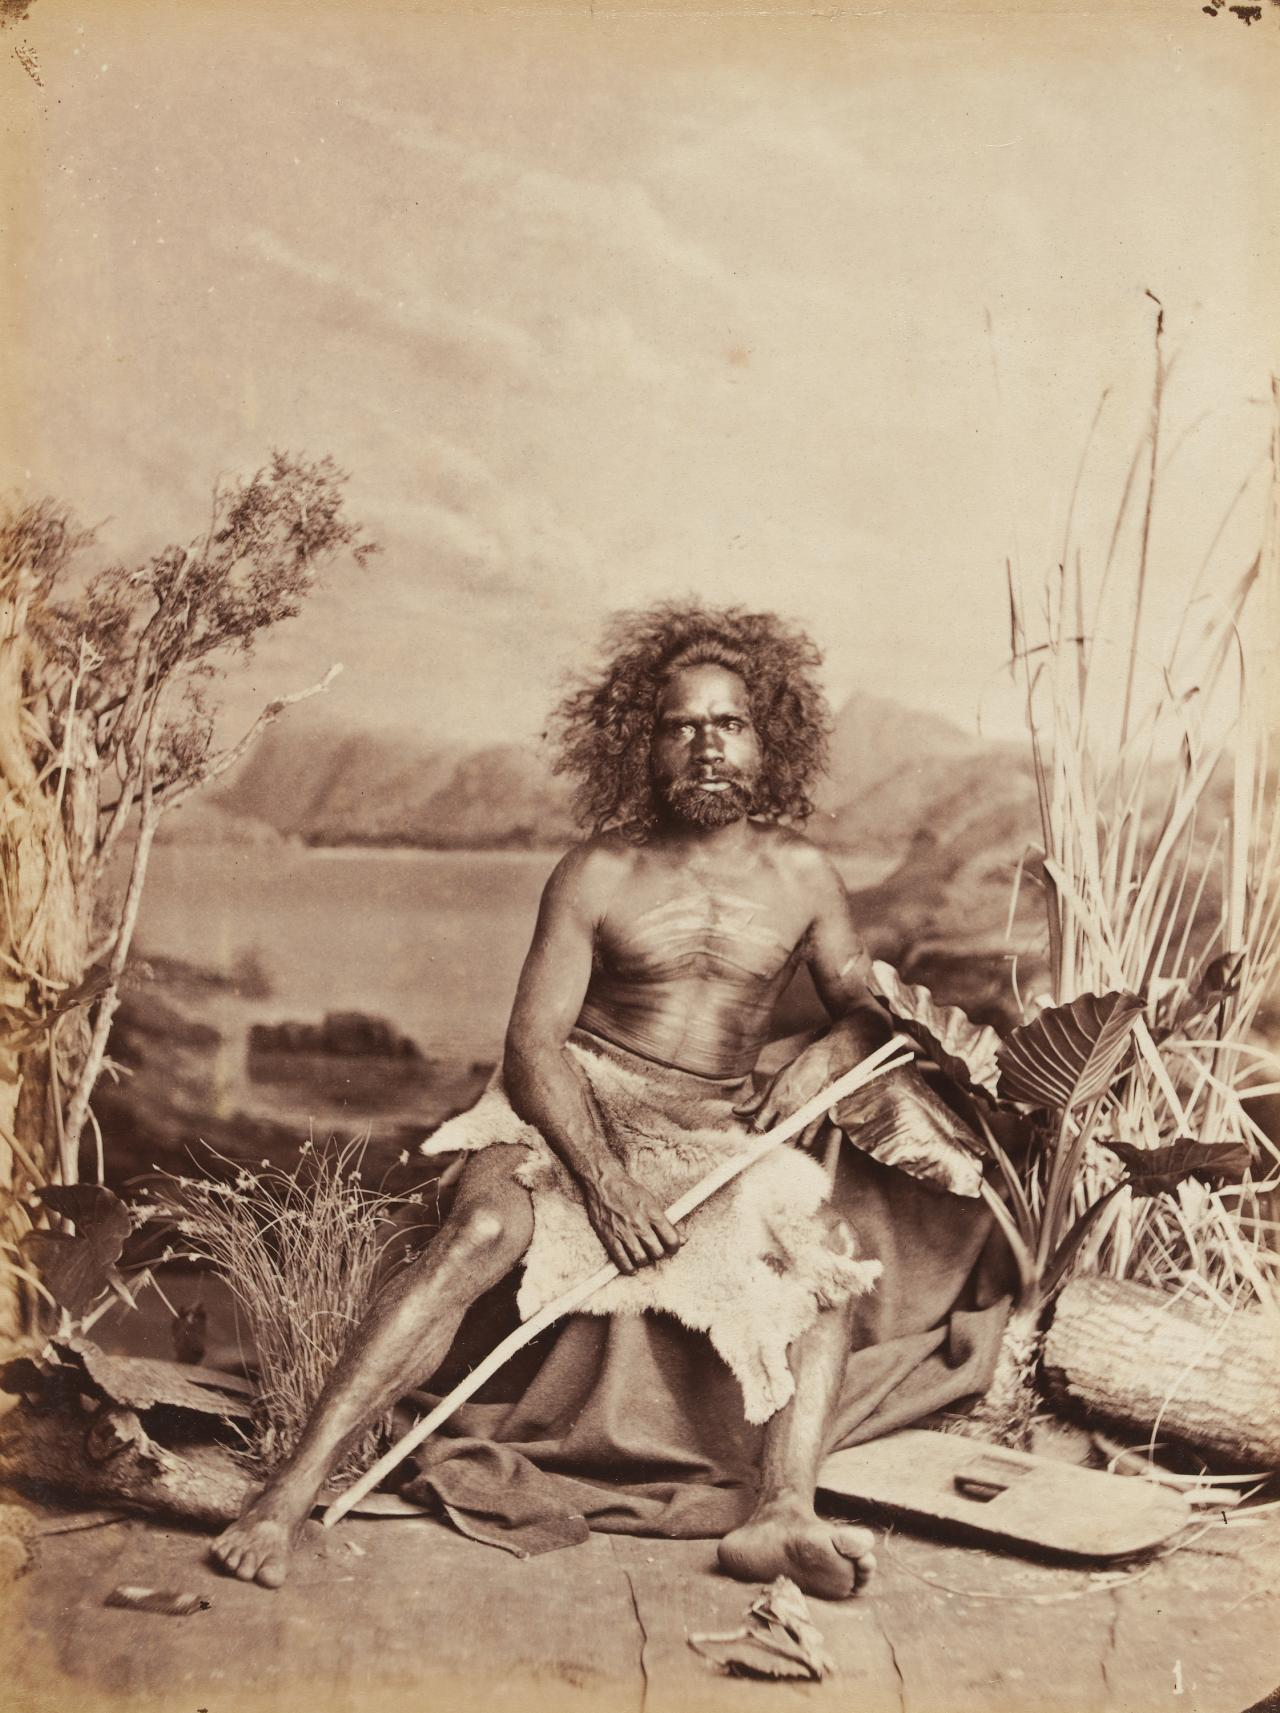 No title (Aboriginal man holding a forked stick)